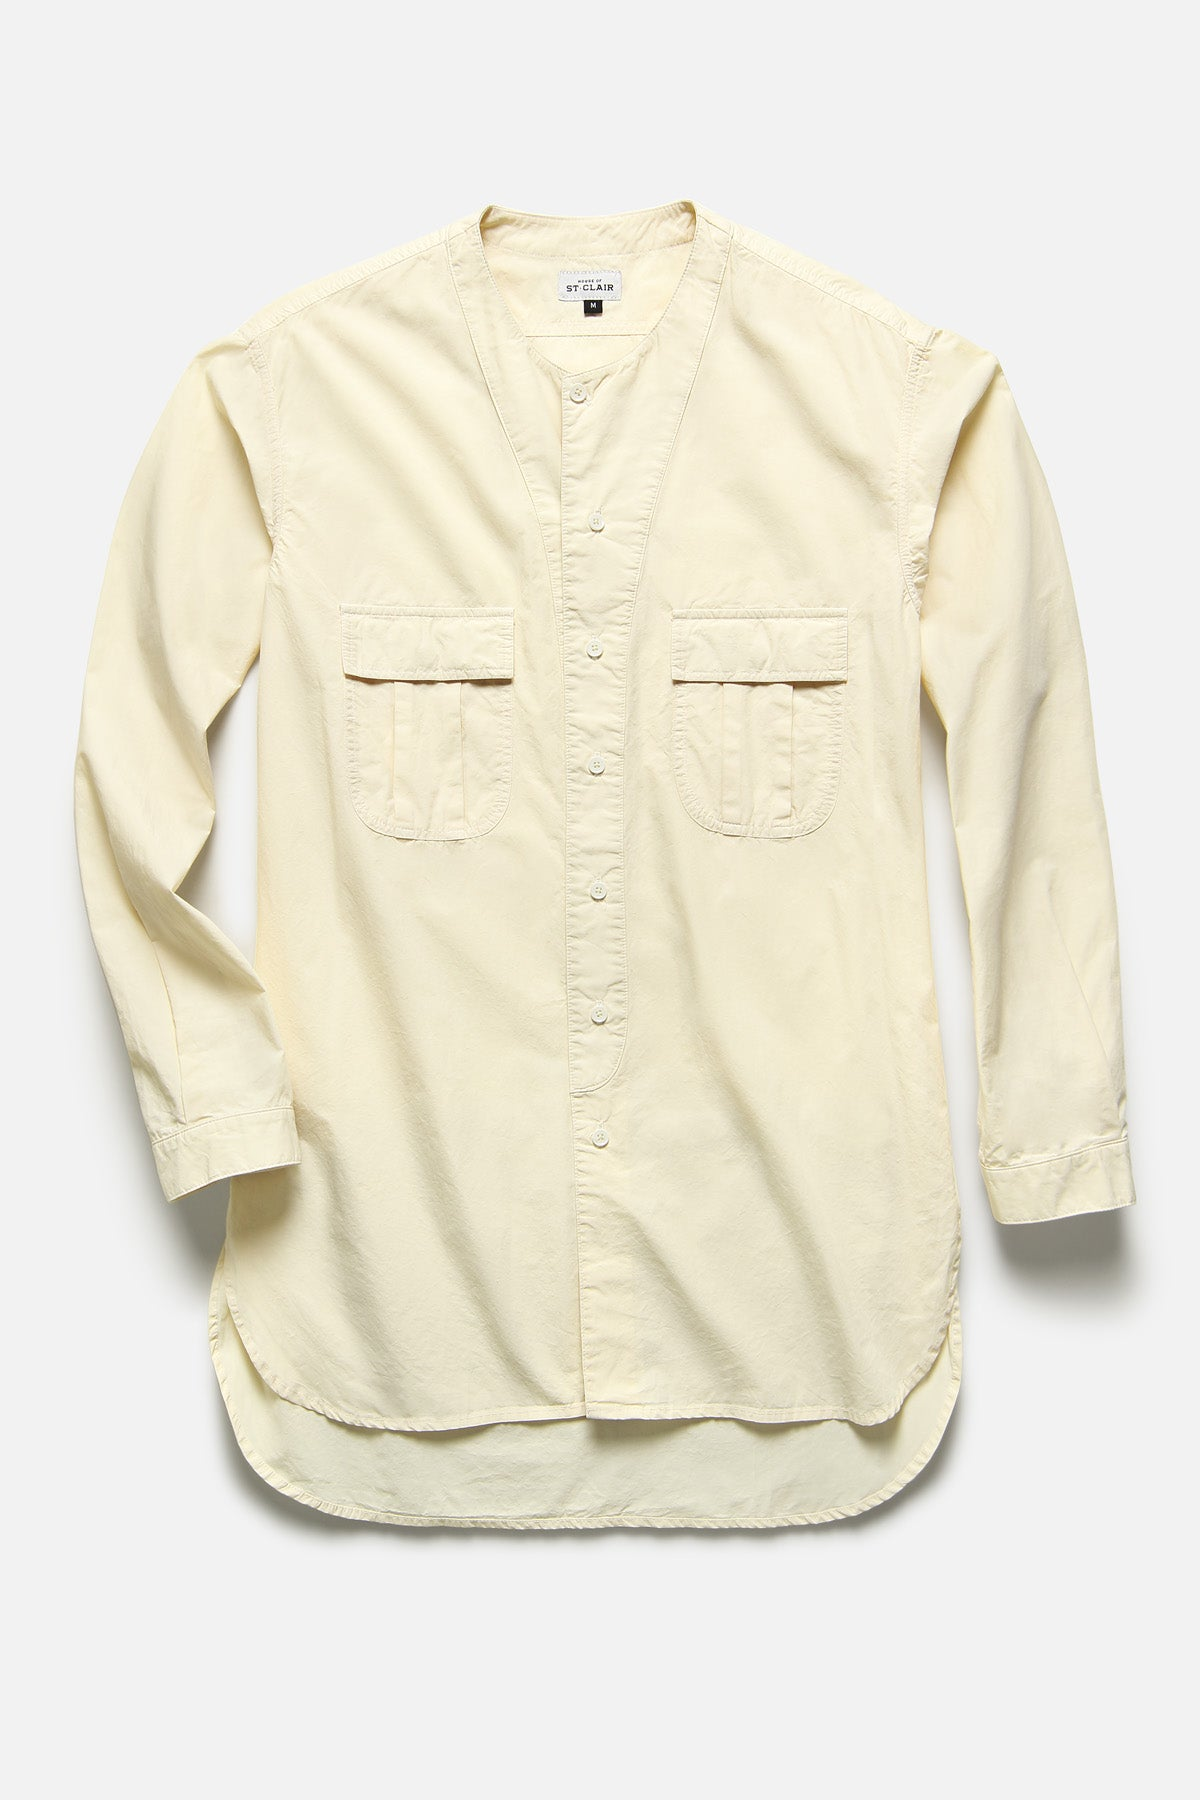 BUTTON DOWN TUNIC IN IVORY TYPEWRITER - Fortune Goods